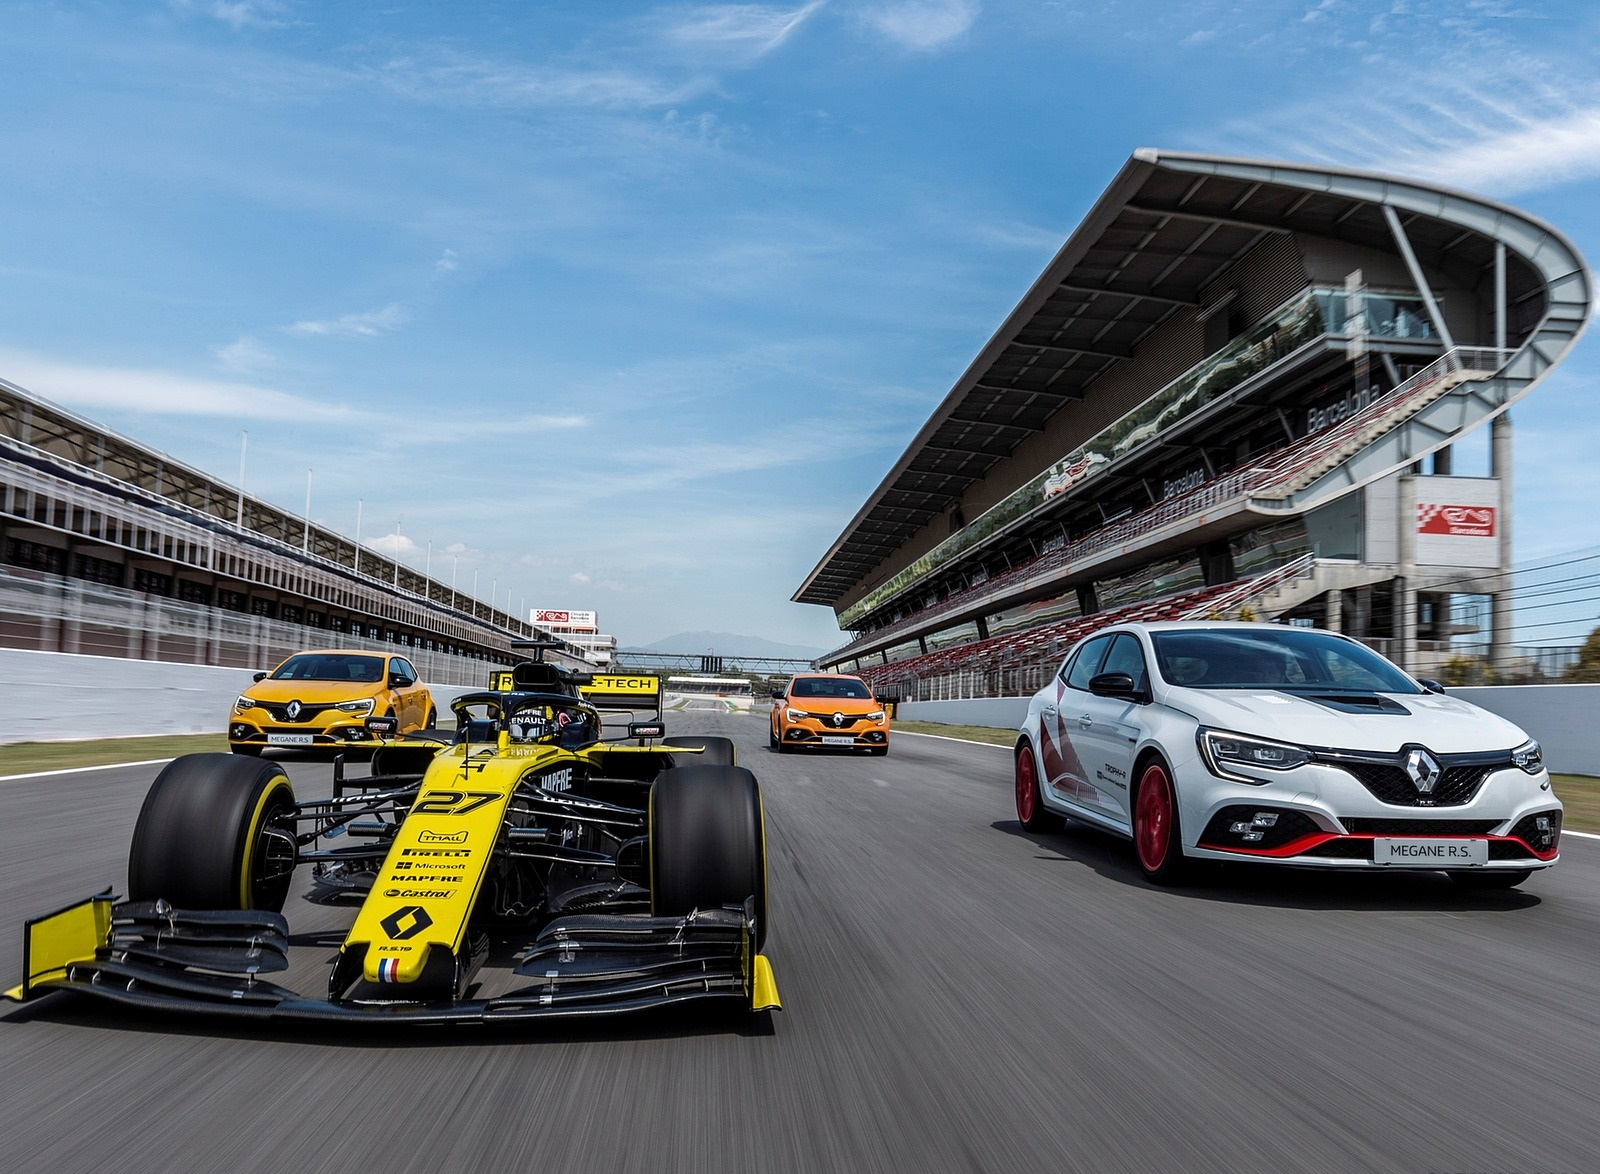 2020 Renault Megane R S Trophy R And R S 19 Formula One Car Wallpapers 23 Newcarcars